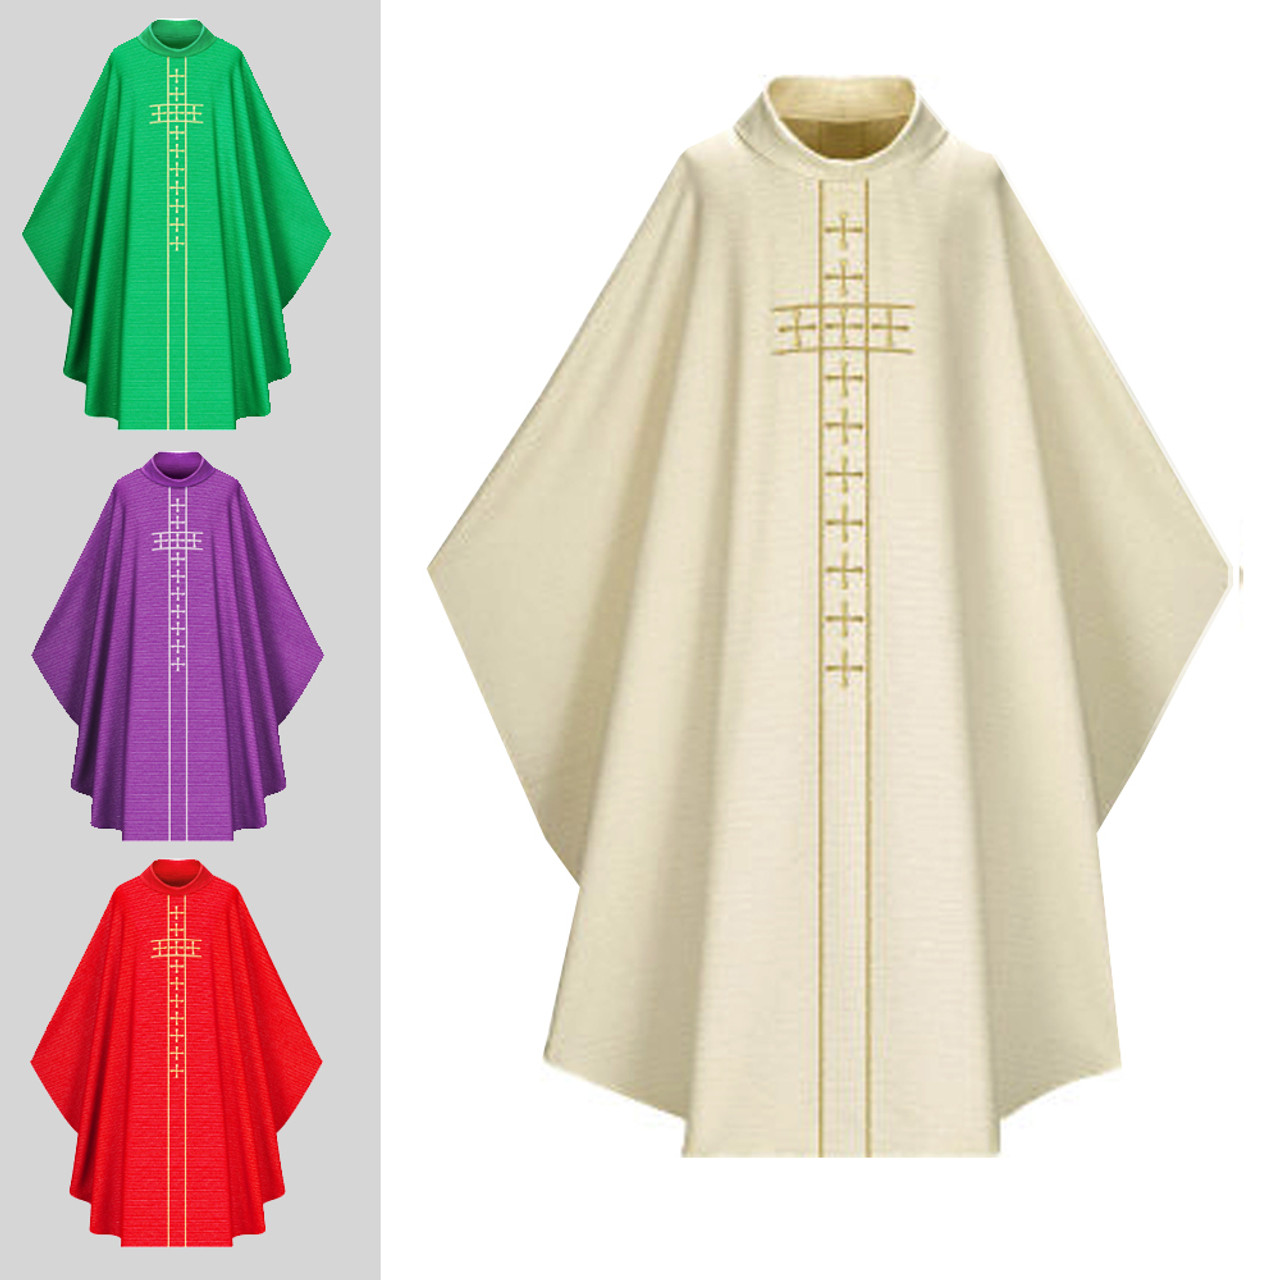 5087 White Chasuble in Cantate